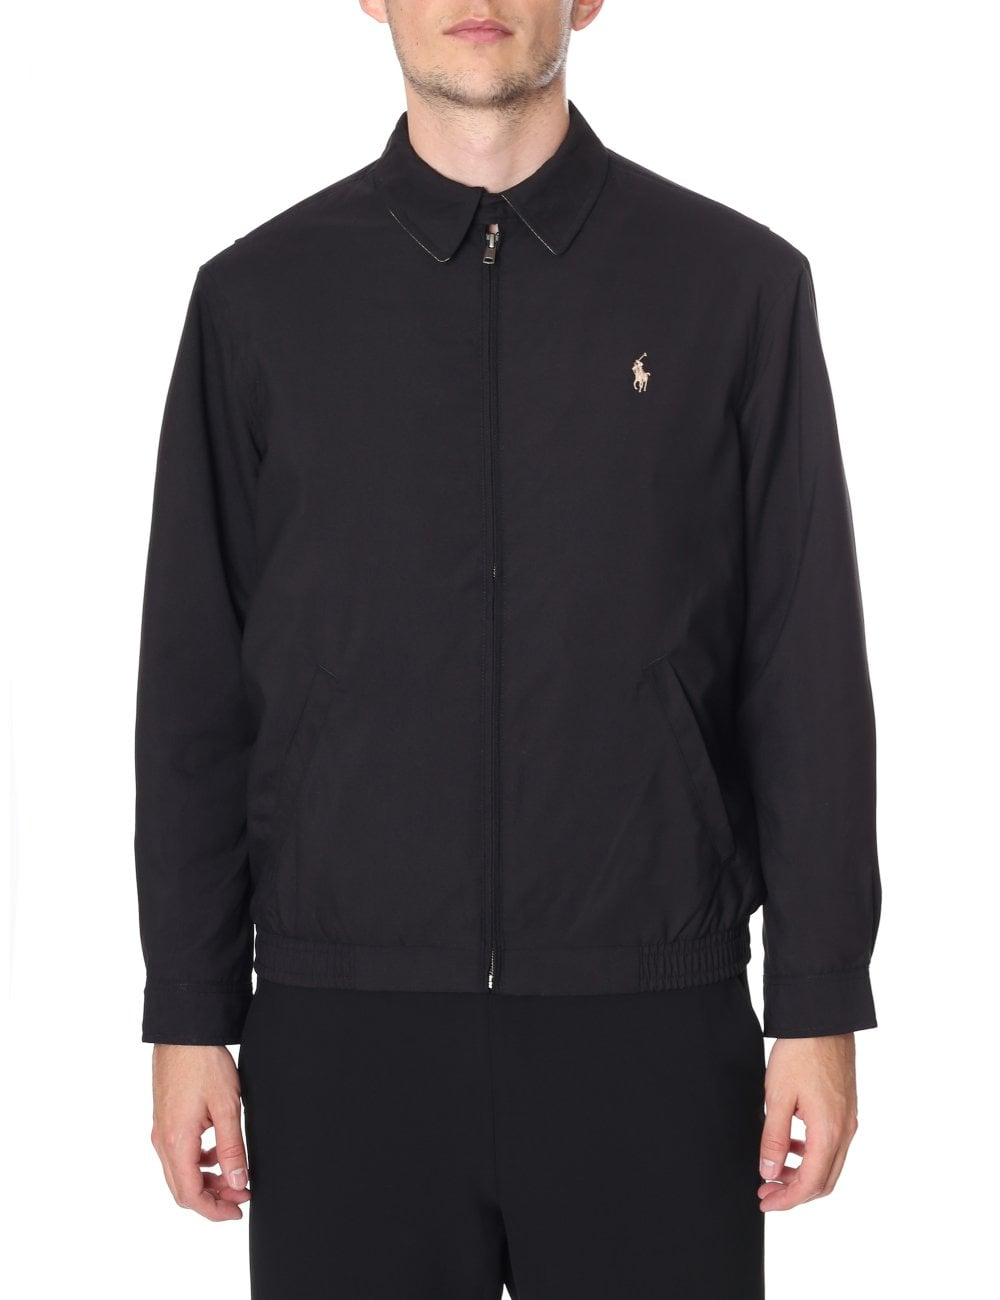 hot-selling clearance attractive & durable search for latest Polo Ralph Lauren Men's Zip Through Harrington Jacket